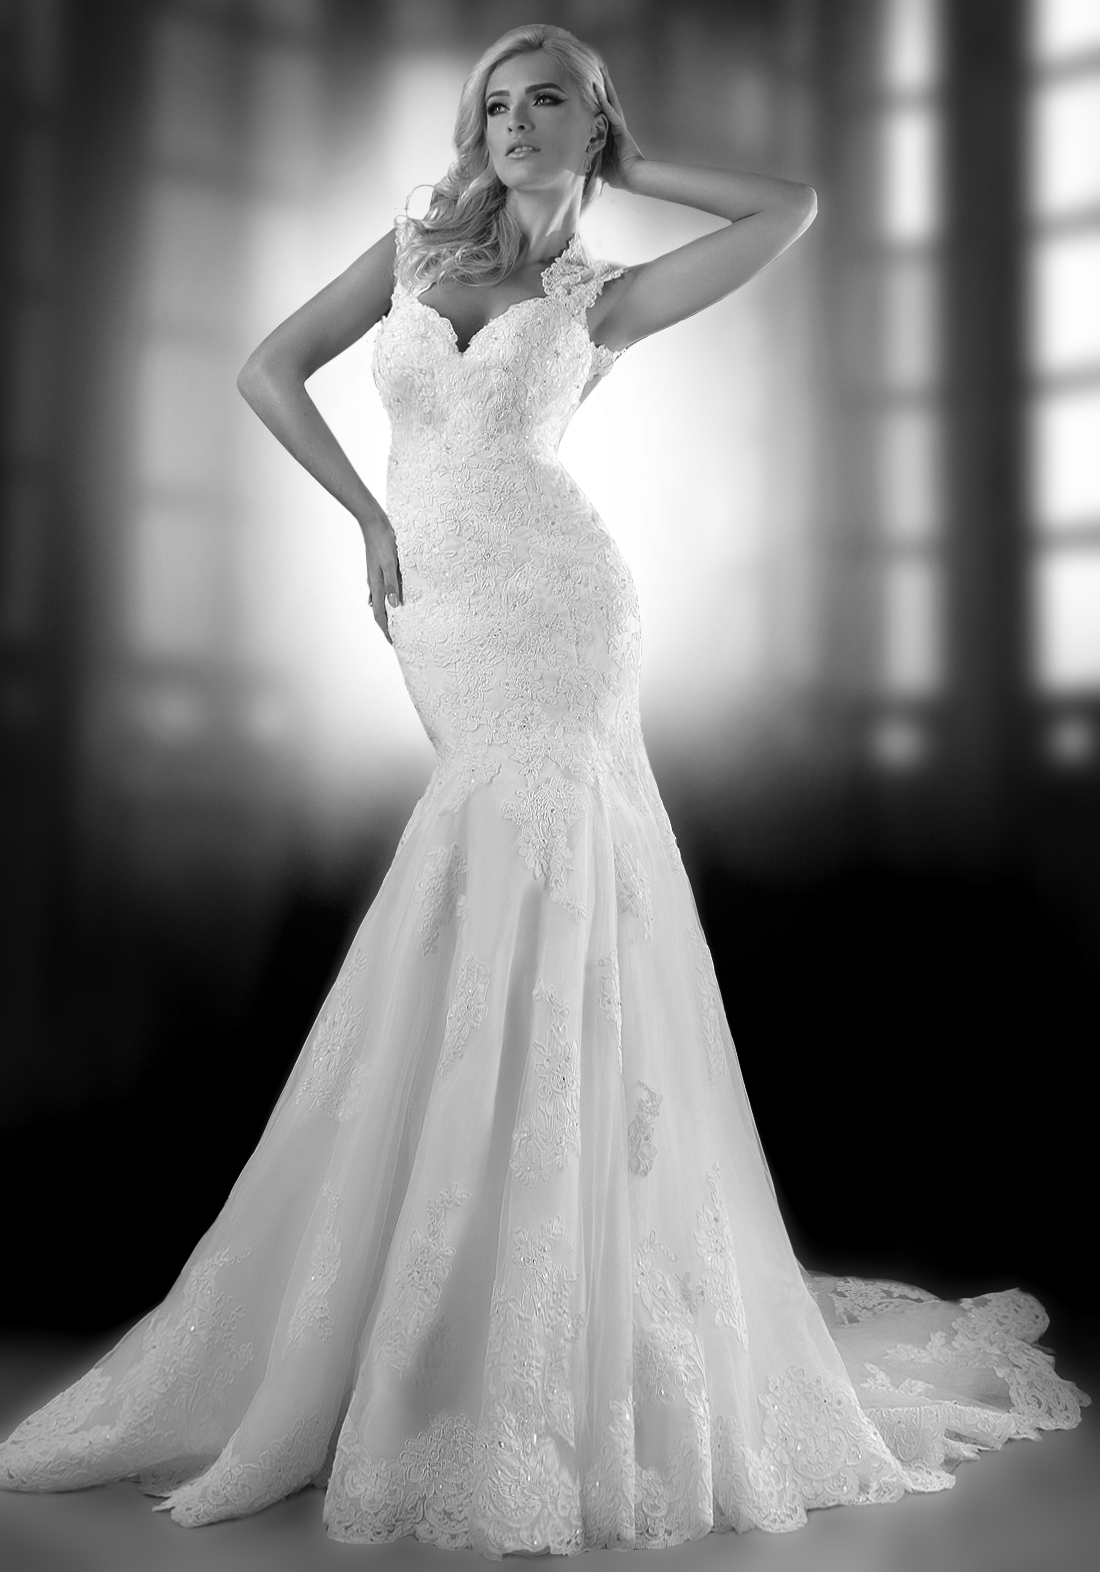 bien-savvy-wedding-dresses-2014-collection-10-01232014